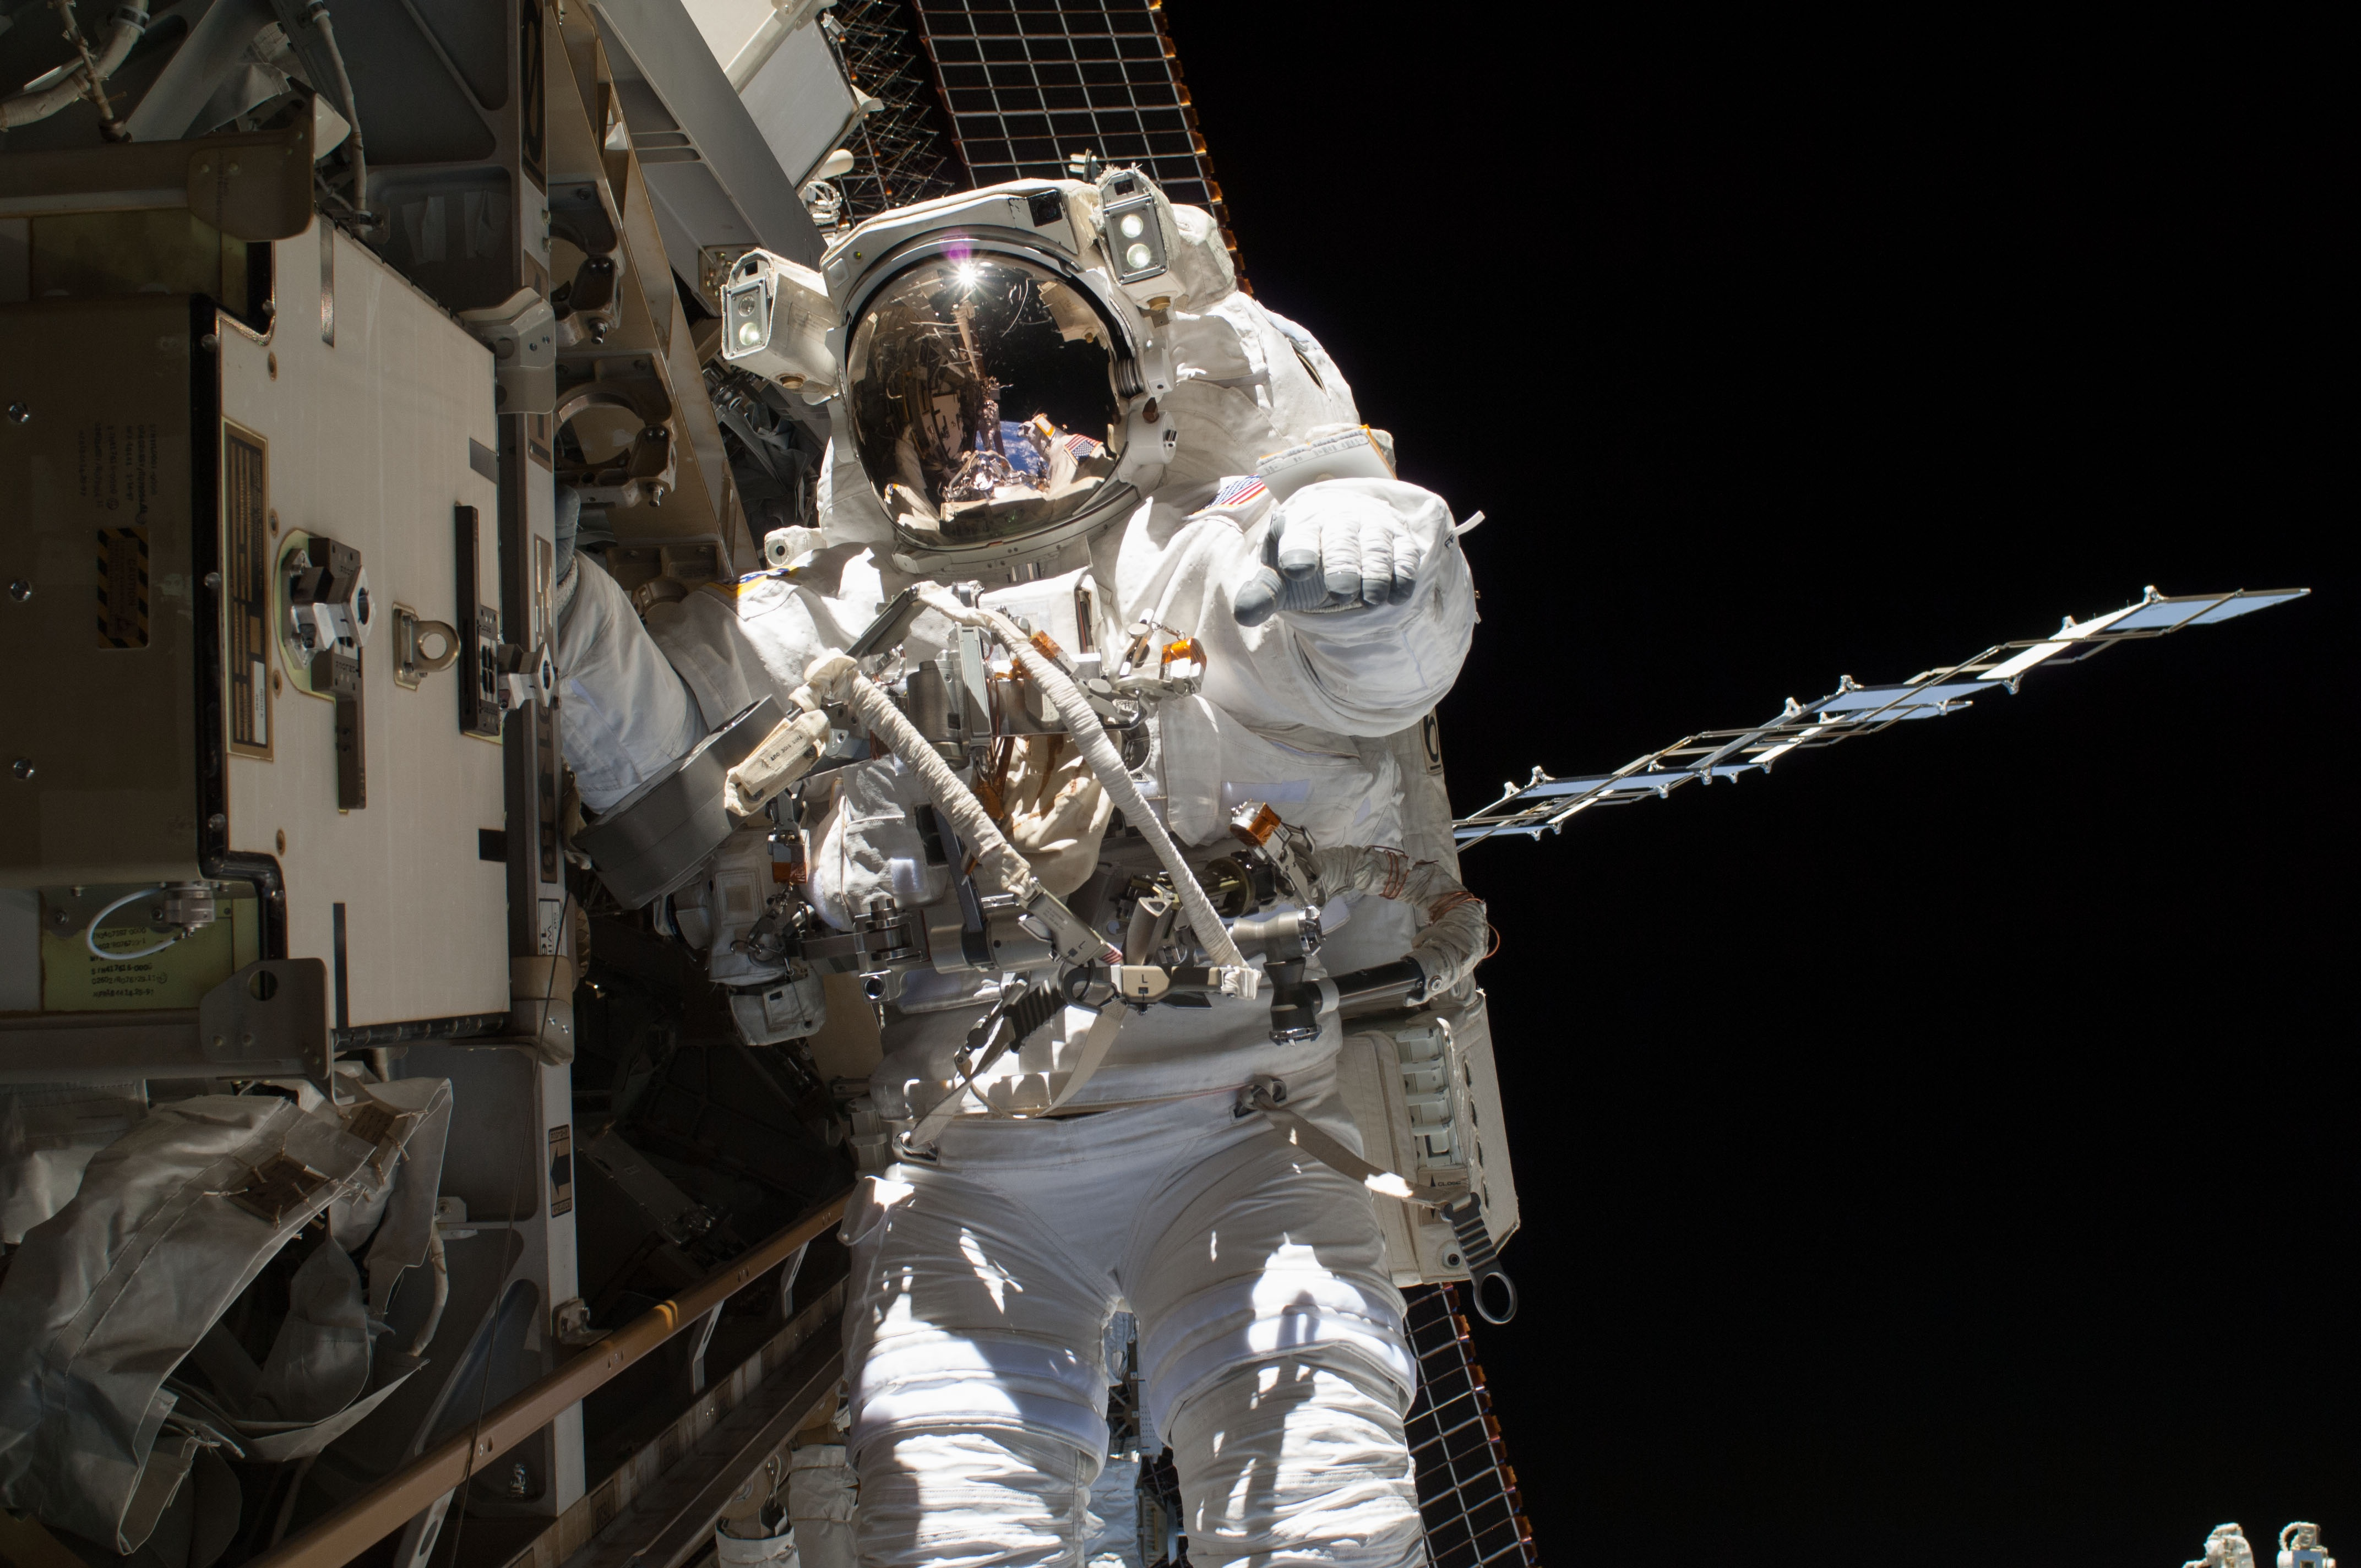 Astronaut in space photo